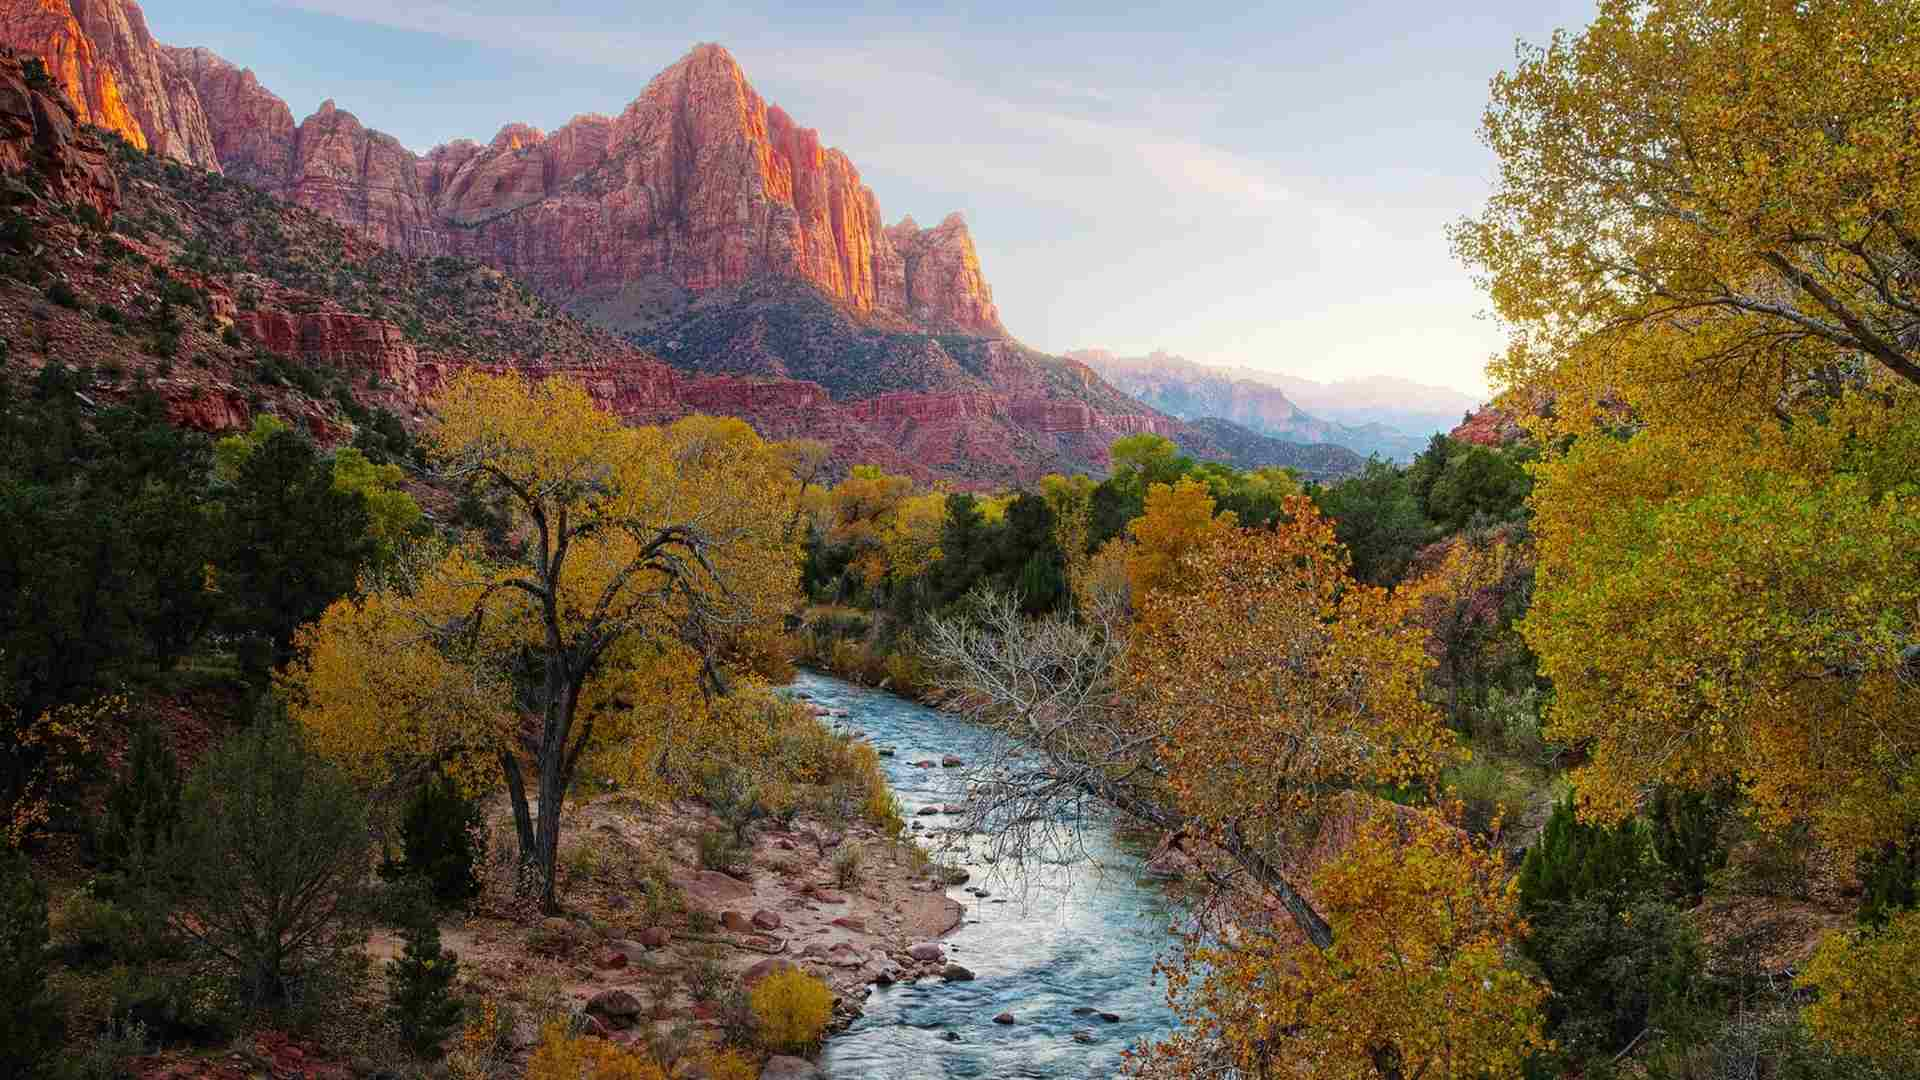 Free autumn wallpaper featuring fall trees by a river with mountains.